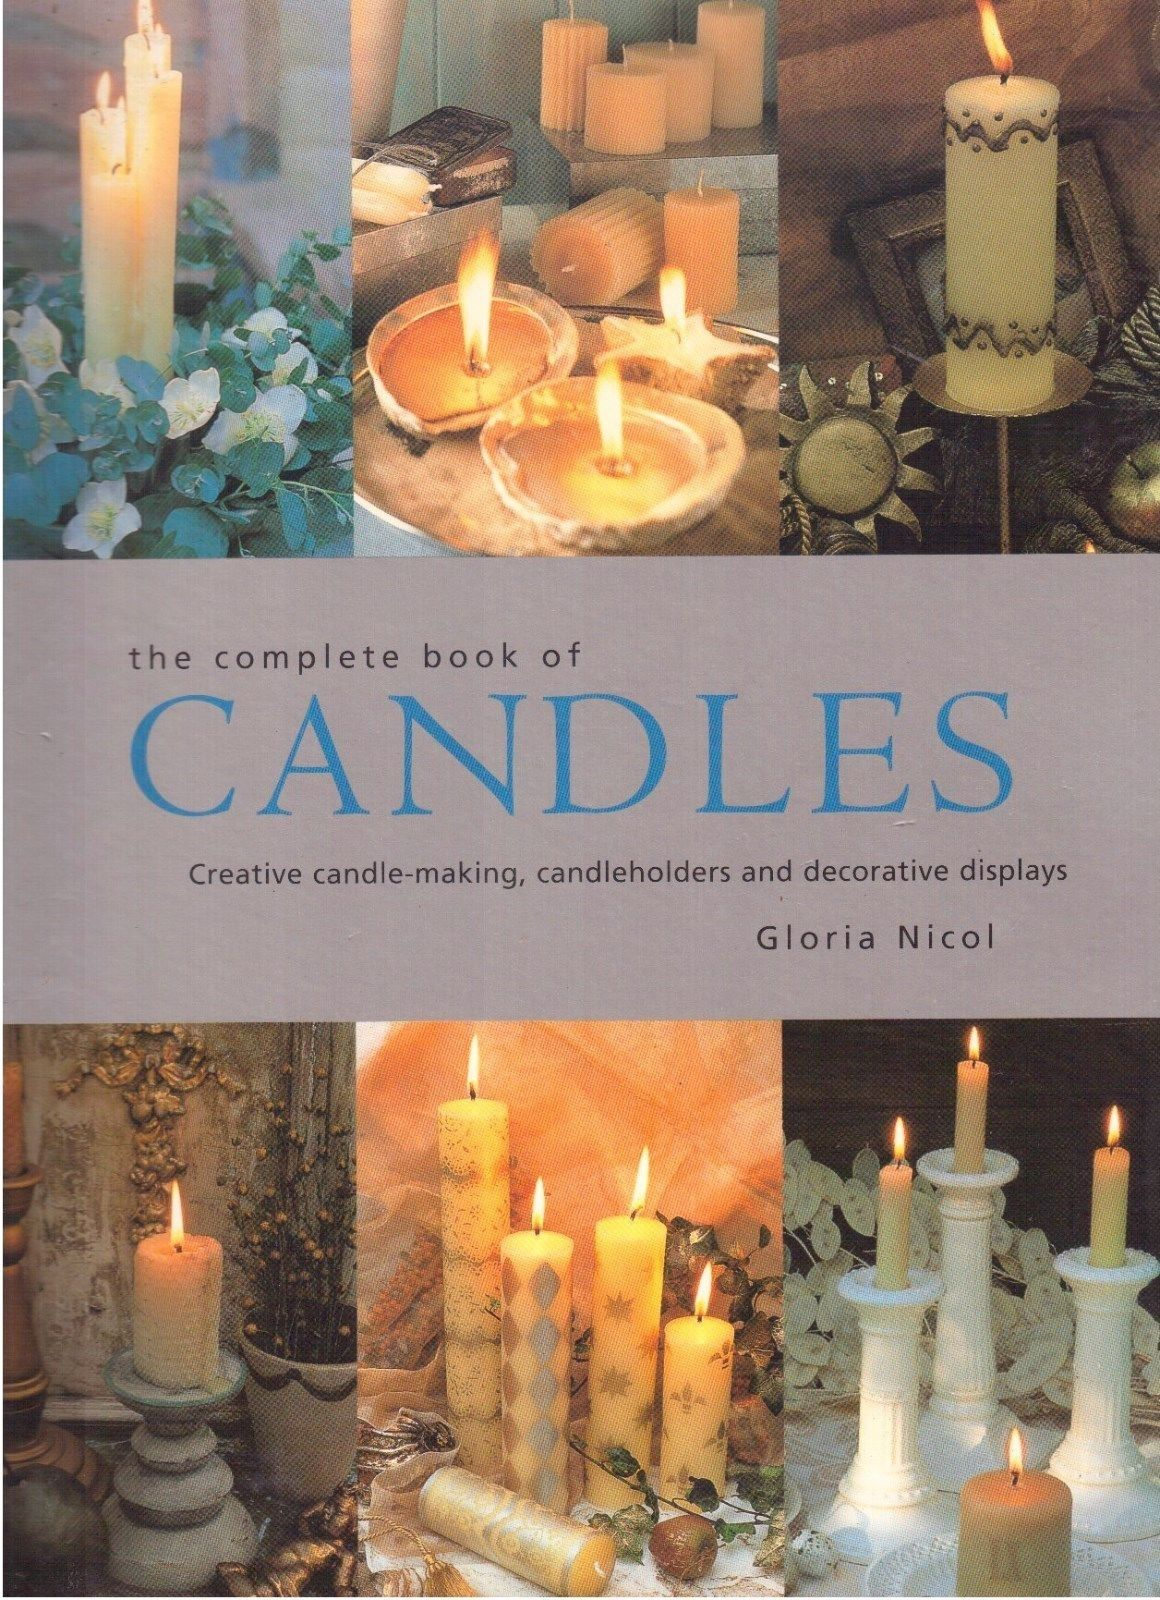 The complete book of Candles by Gloria Nicol